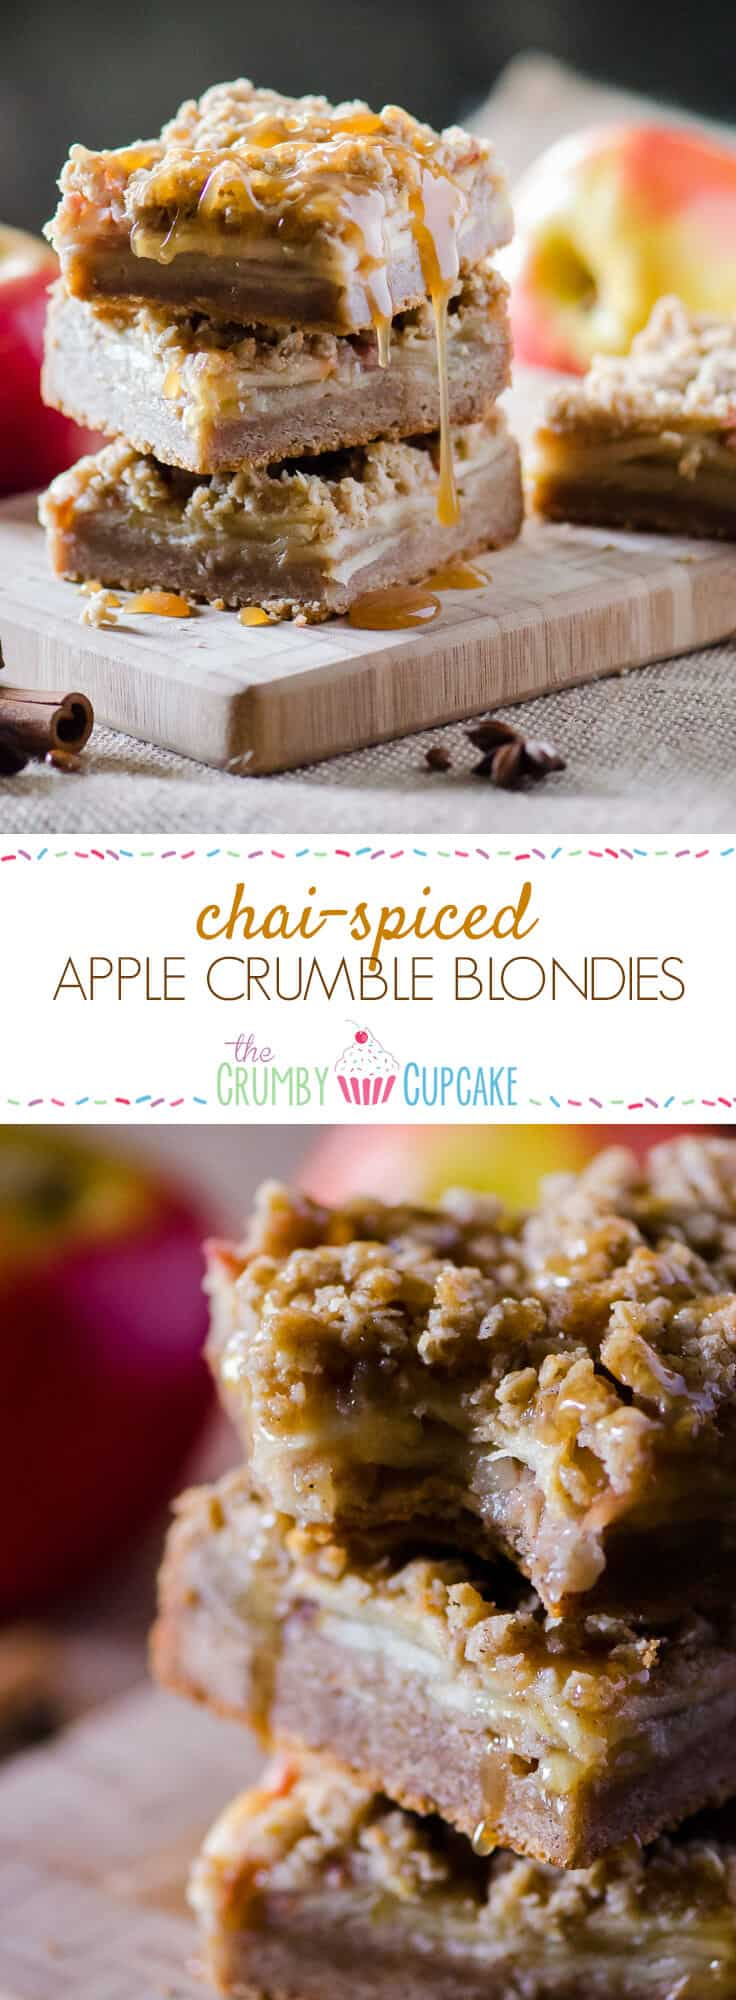 Blondies, fall style!Chai-Spiced Apple Crumble Blondies combine the flavors of the season with the brownie's brown sugared-little sister.